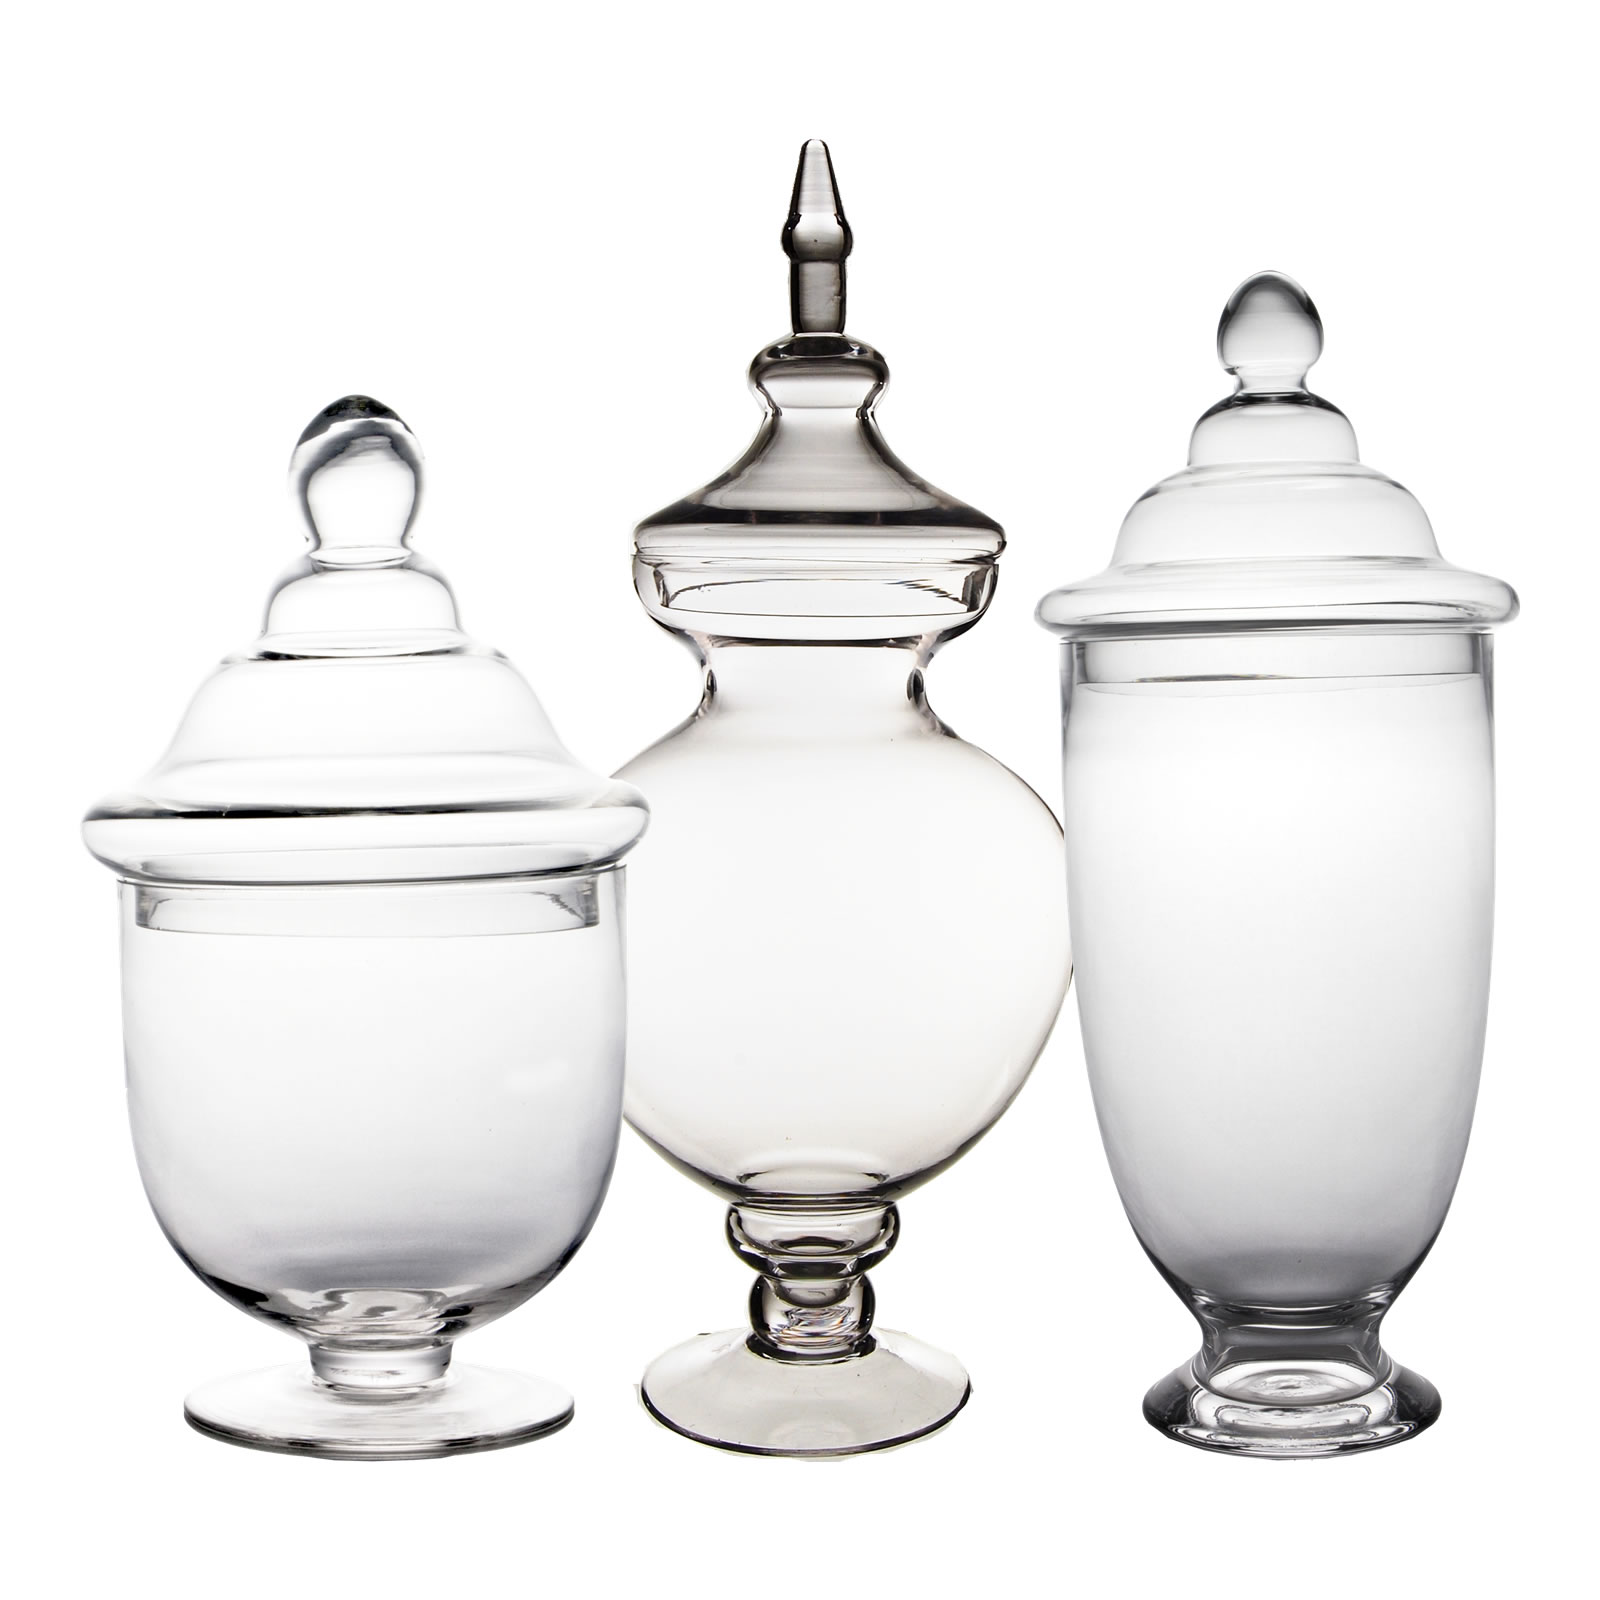 "Glass Apothecary Jars Set of 3, H-21.5, 14.25"", 18.5"""